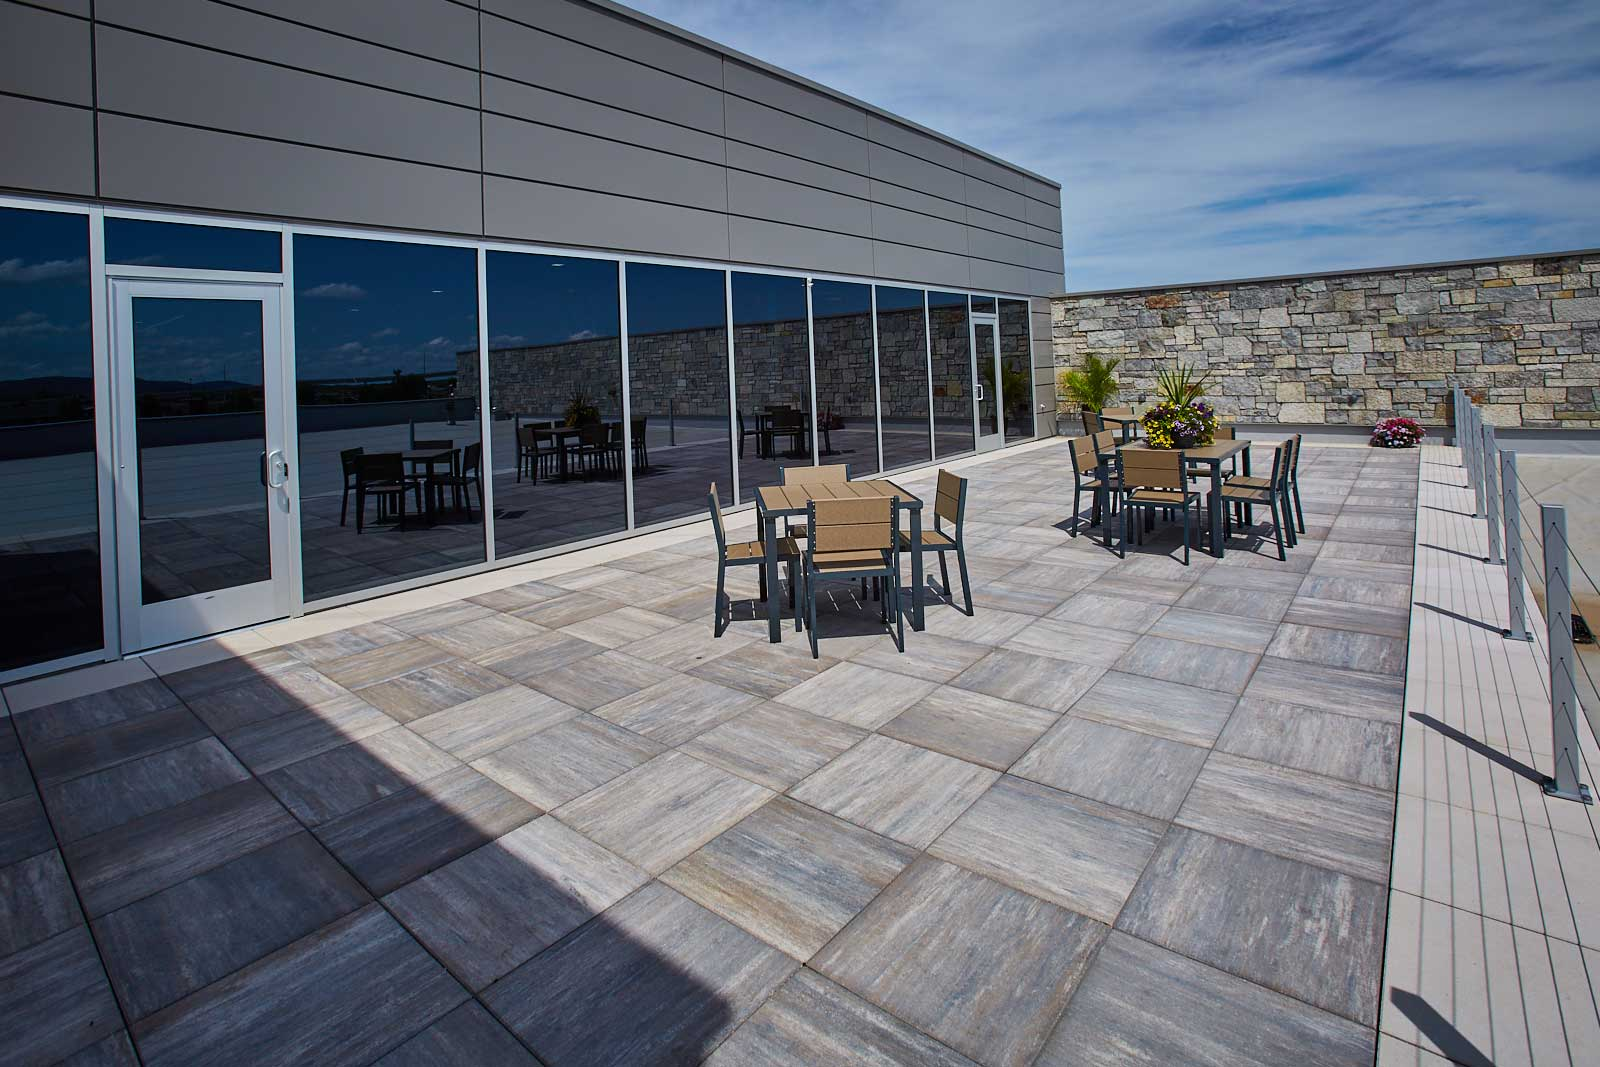 County Materials Supplies Skylands™ Concrete Deck Pavers Mid-Winter for Time-Sensitive Healthcare Facility Project